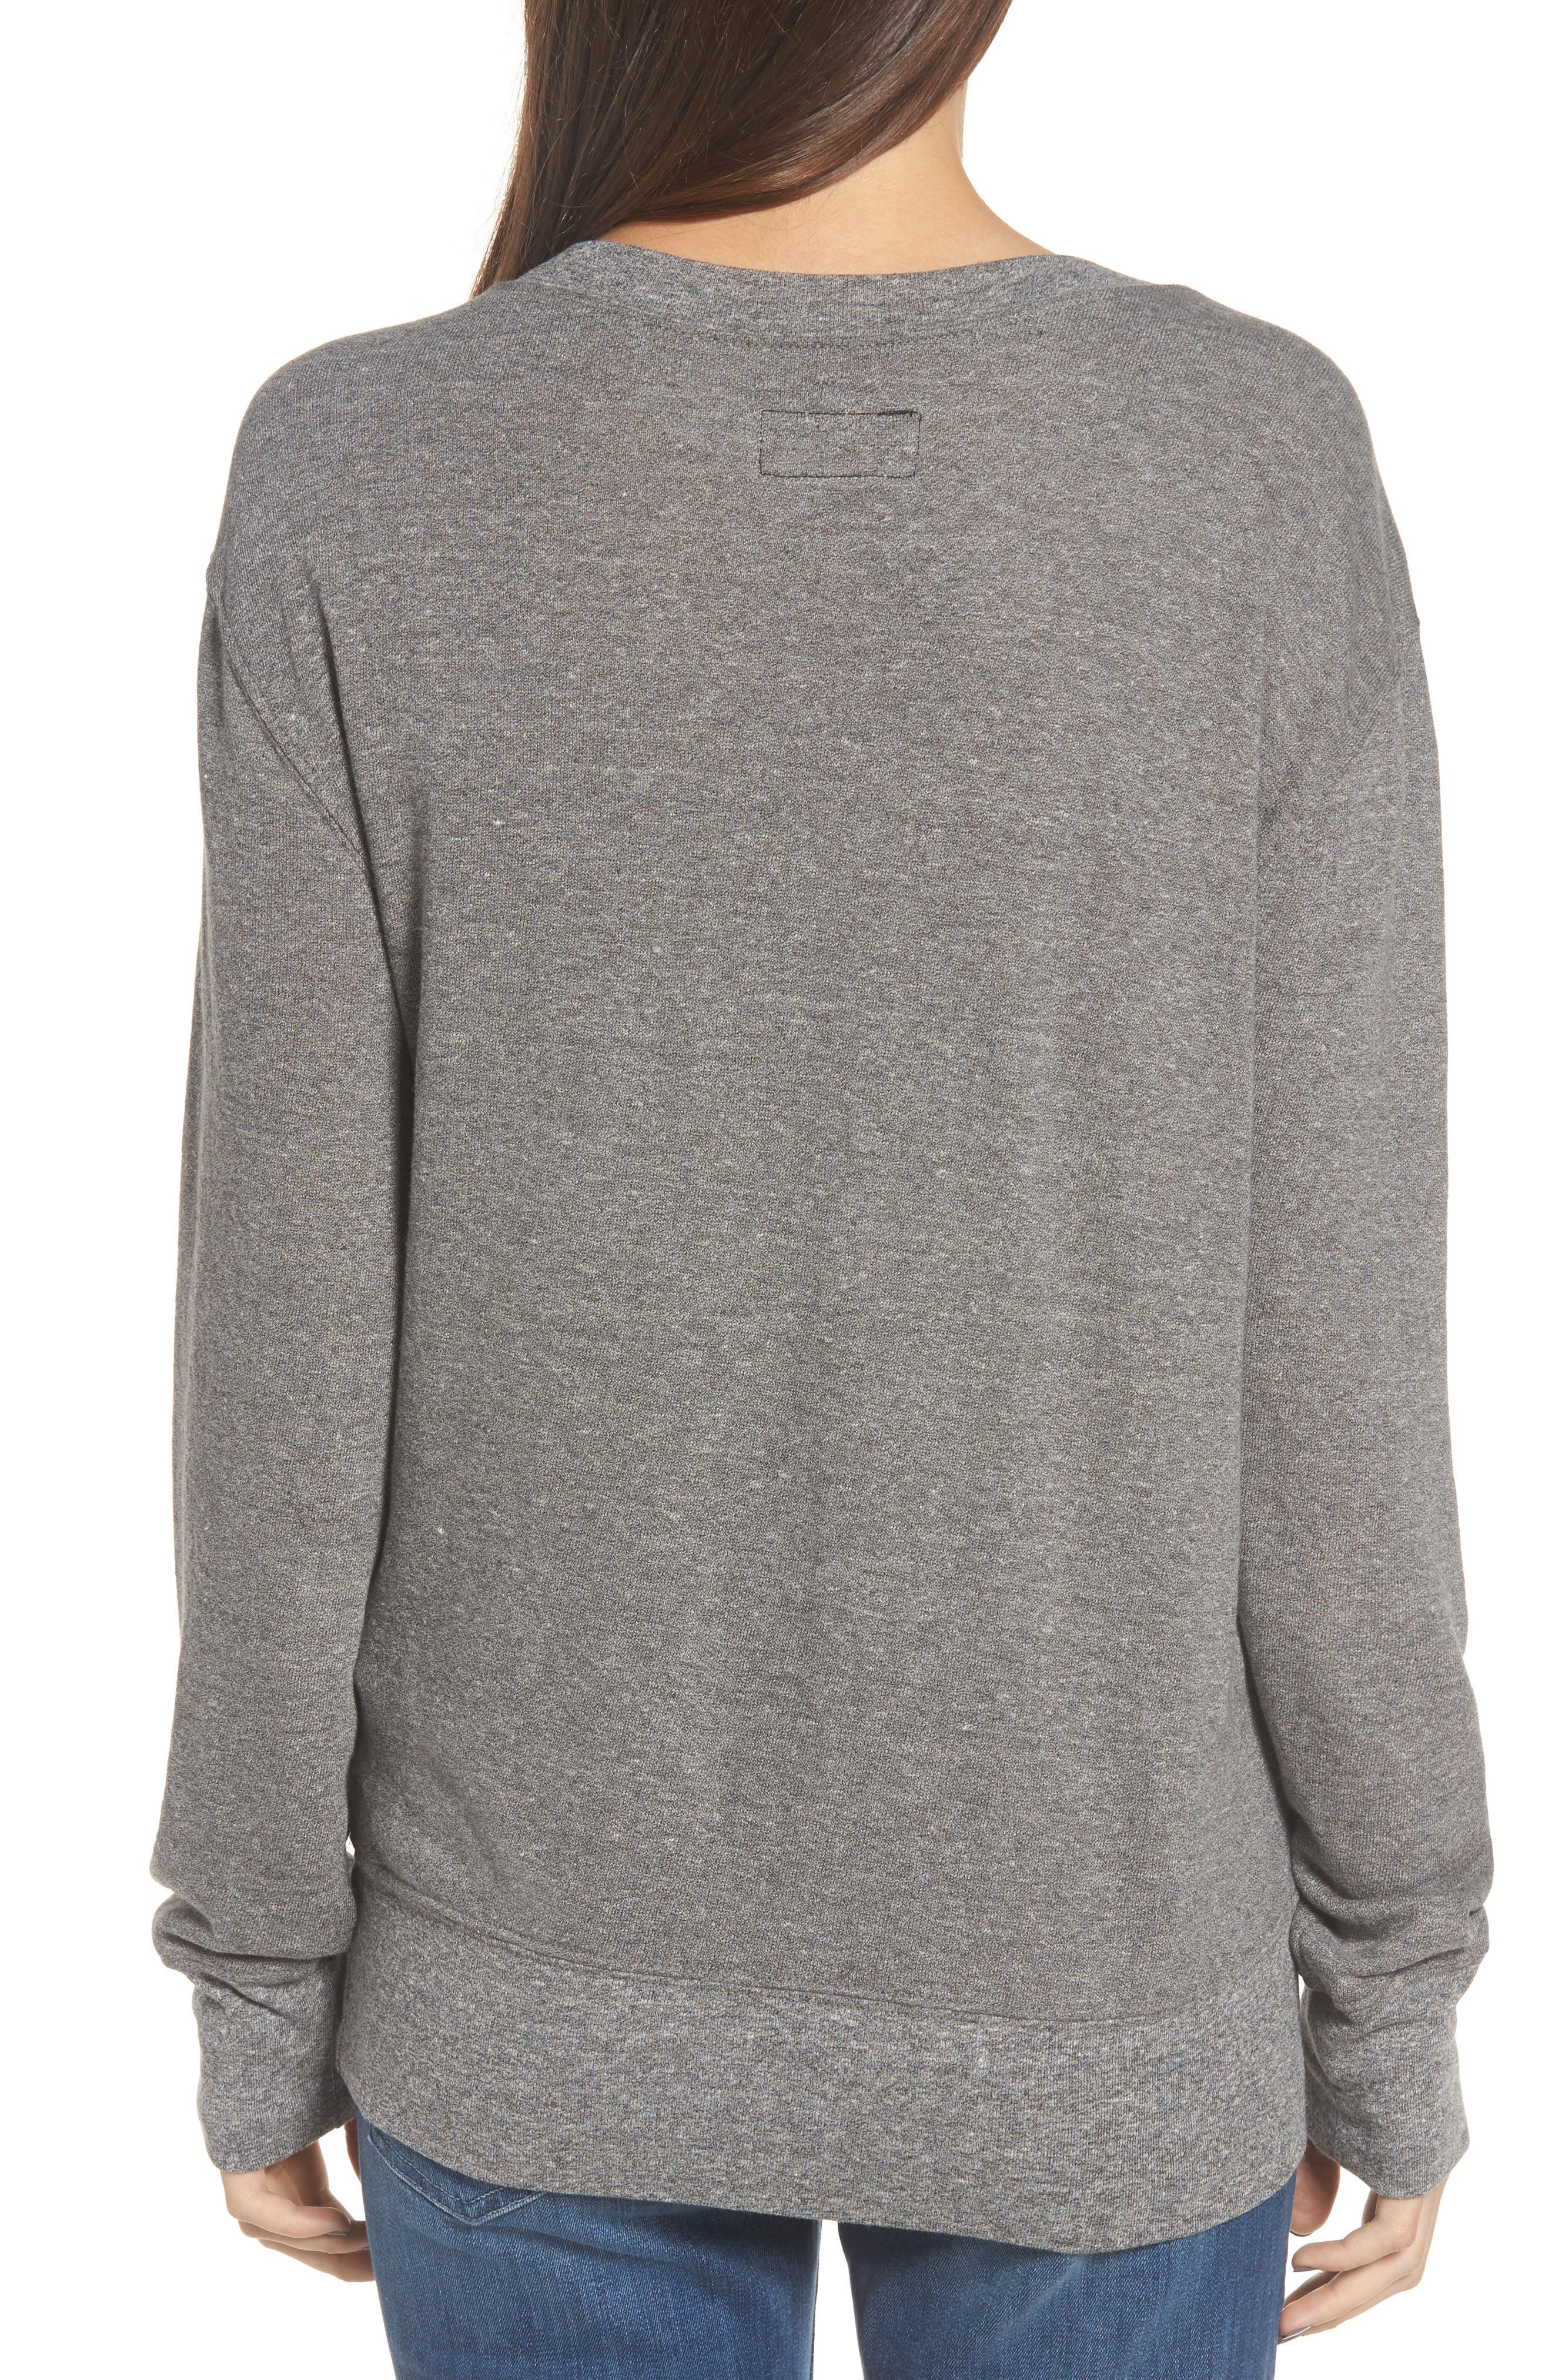 Alternate Image 2  - Current/Elliott Heathered Slouchy Sweatshirt